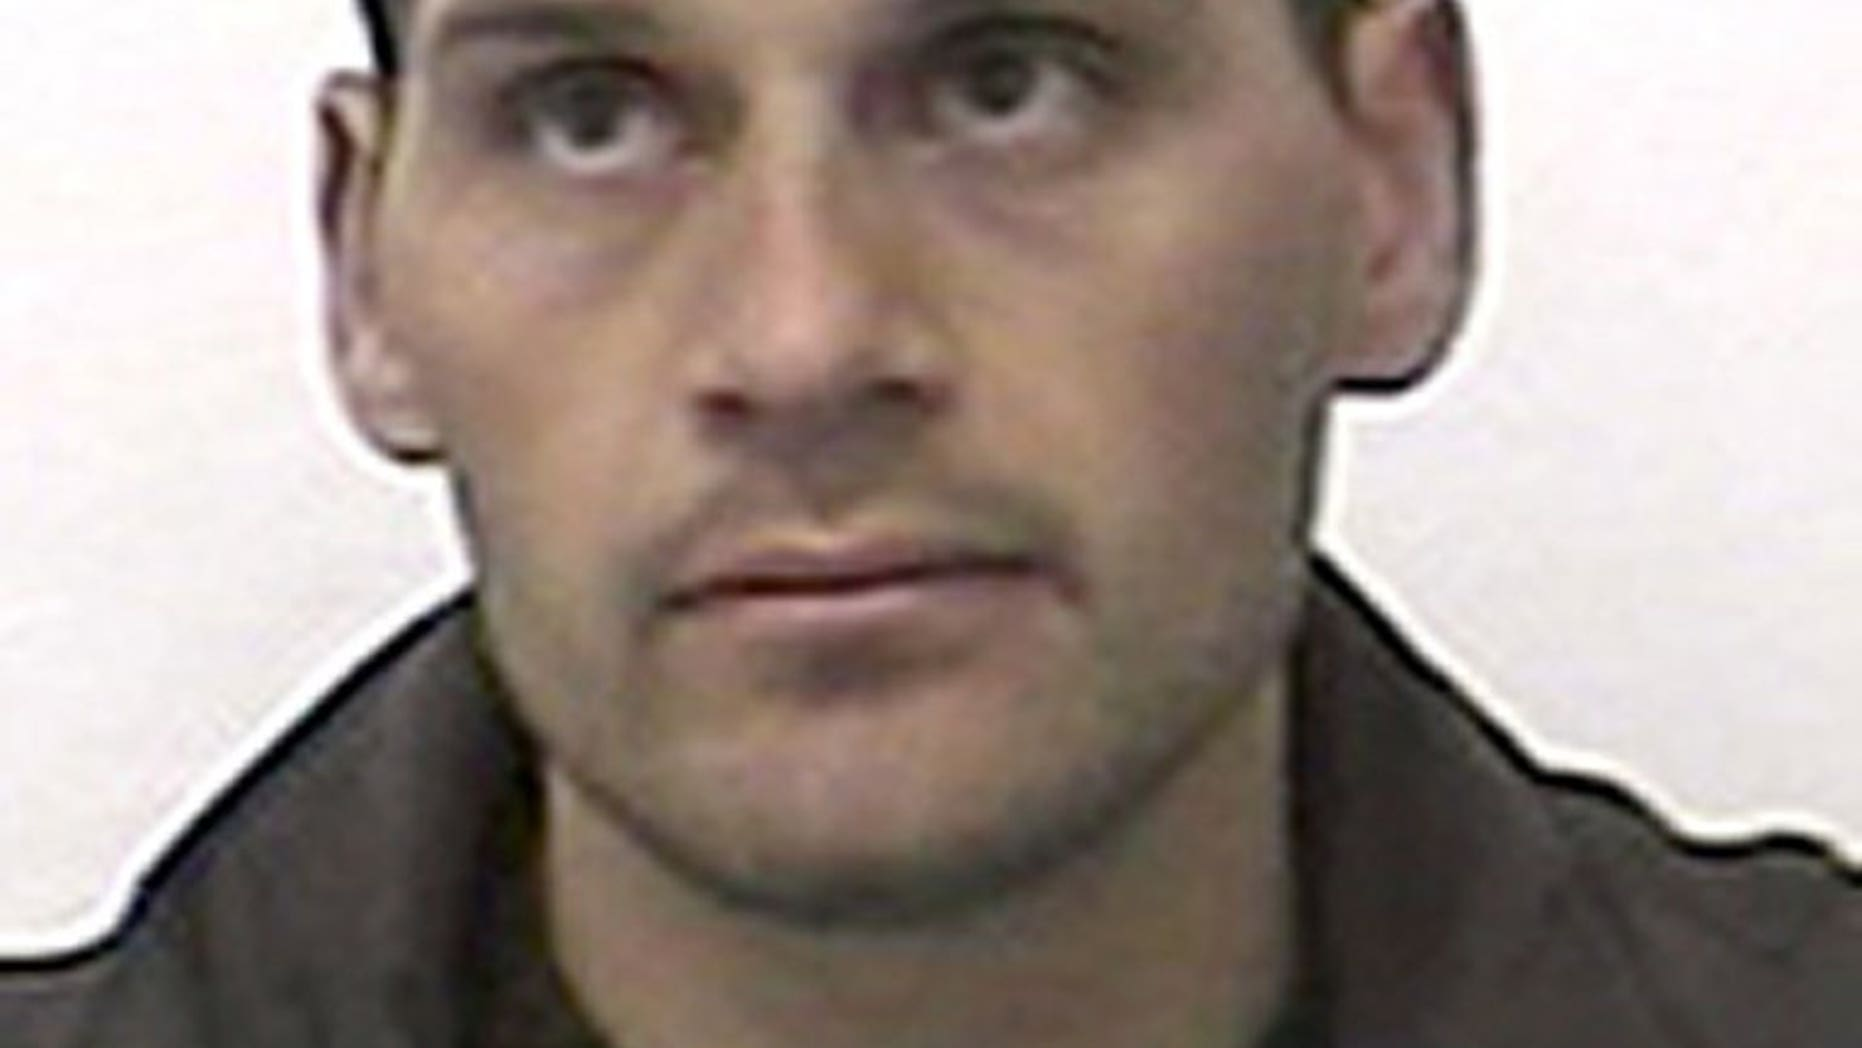 A handout photo made available by the Italian Police on September 21, 2013 shows Francesco Nirta -- a senior leader of the 'Ndrangheta mafia based in the southern Calabria region. Dutch police have arrested Nirta -- a senior mafia boss who is one of Italy's 10 most wanted men, according to the Italian government.